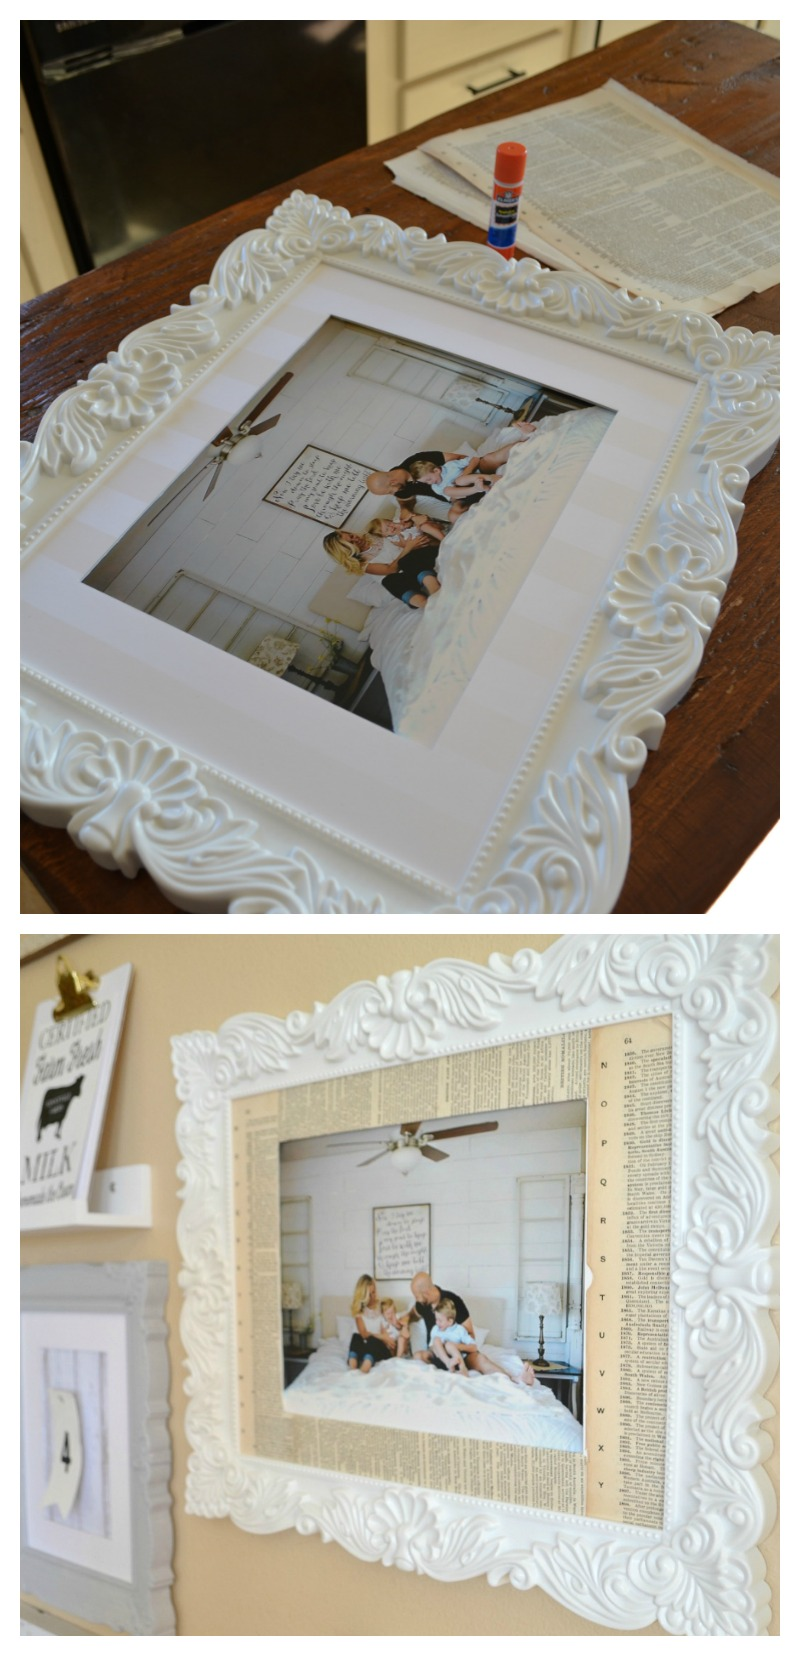 Framed Family Photo Lined in Book Pages For Gallery Wall